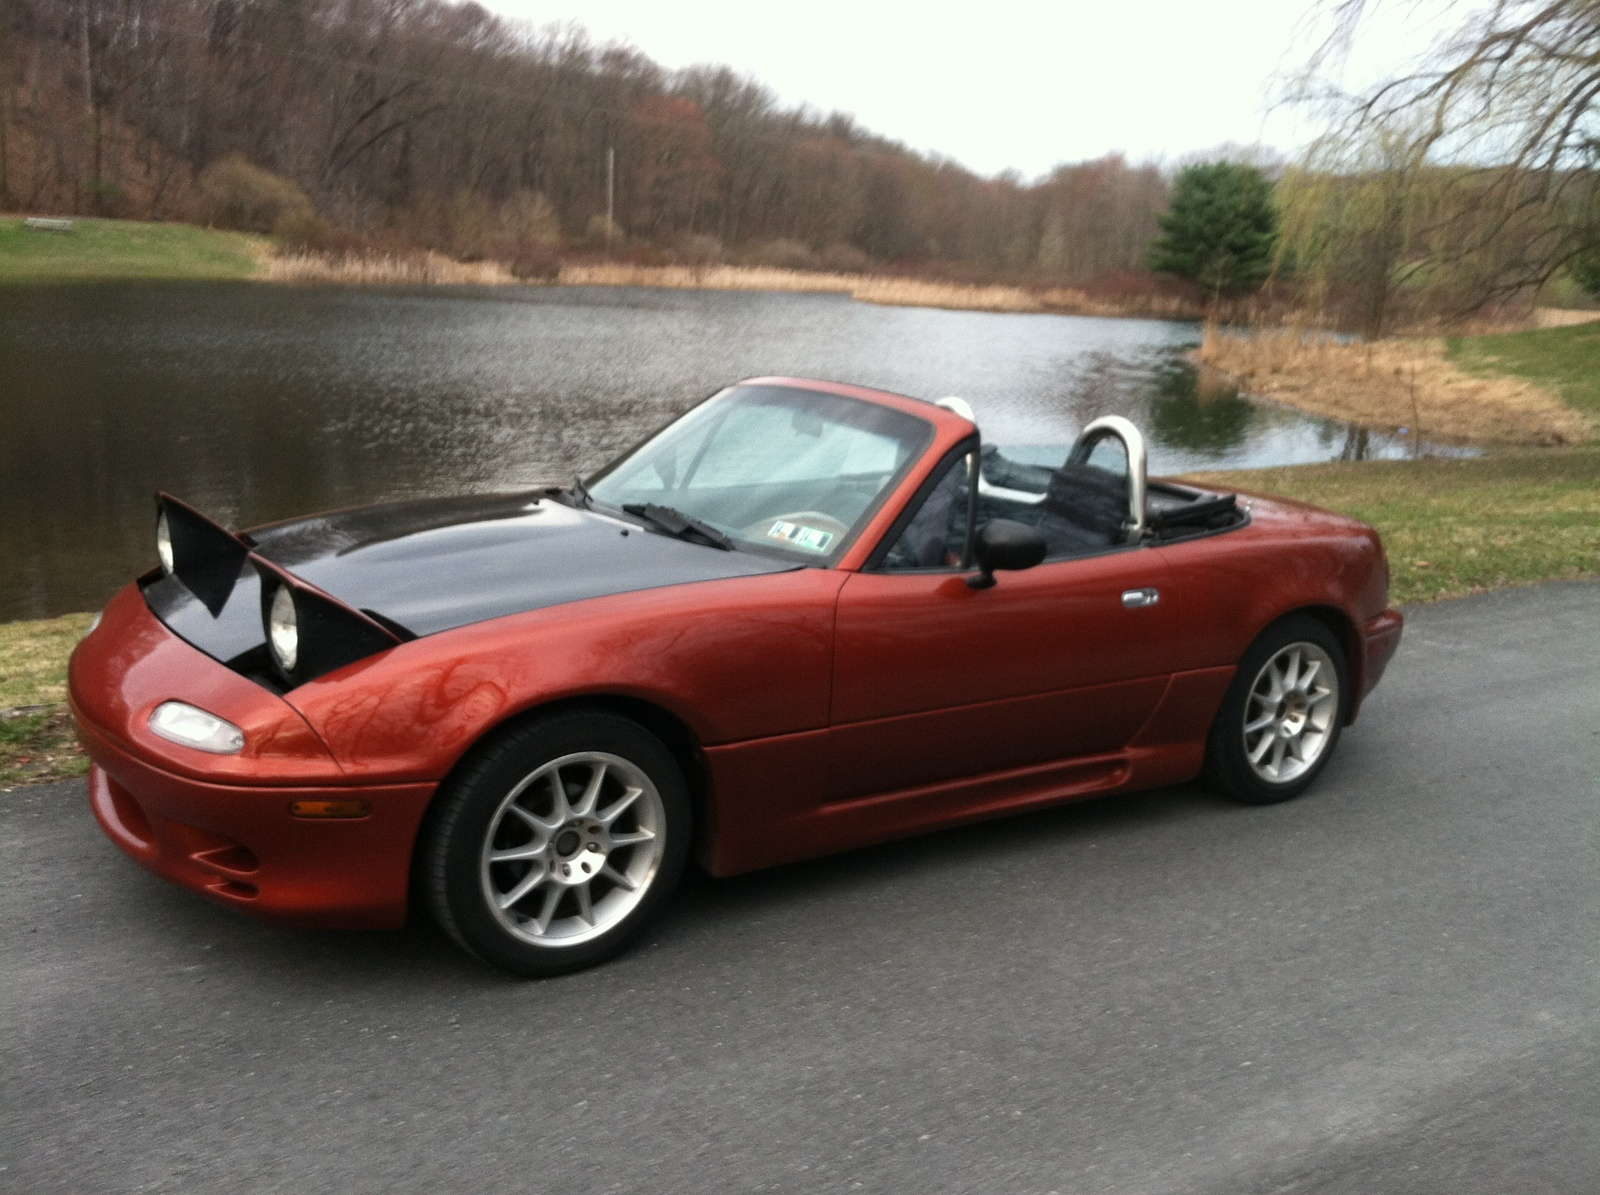 1991 Mazda Mx 5 Pictures To Pin On Pinterest Pinsdaddy